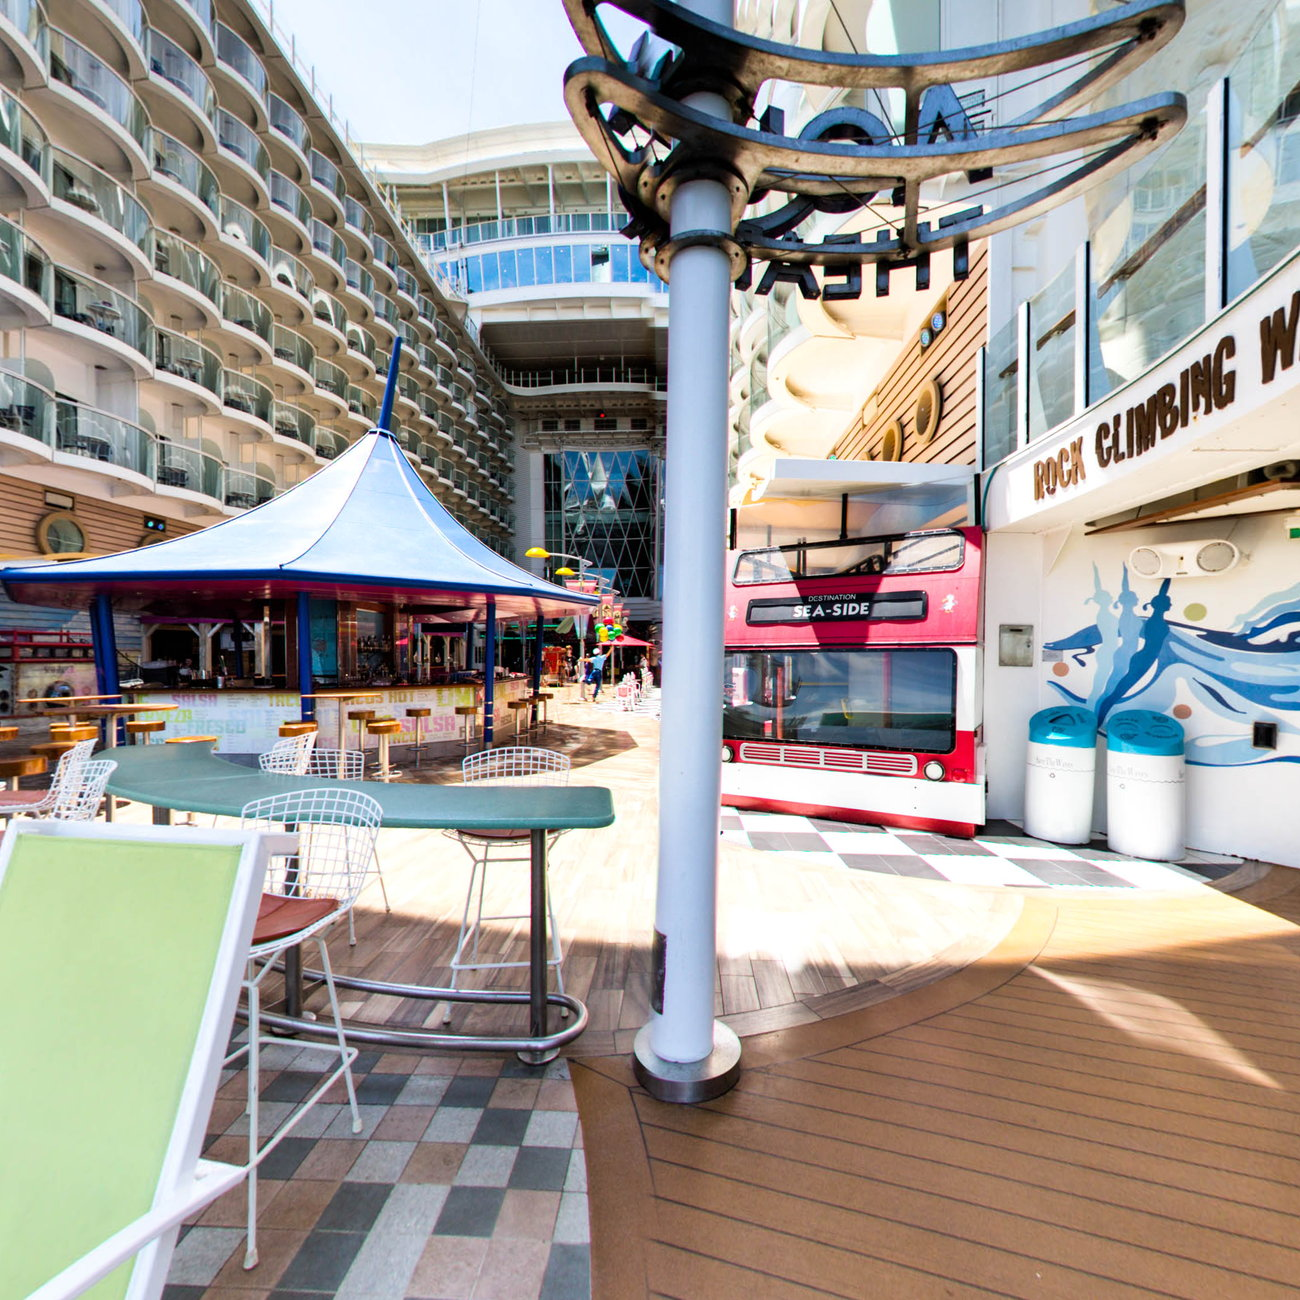 Panorama of Aqua Theater on Oasis of the Seas